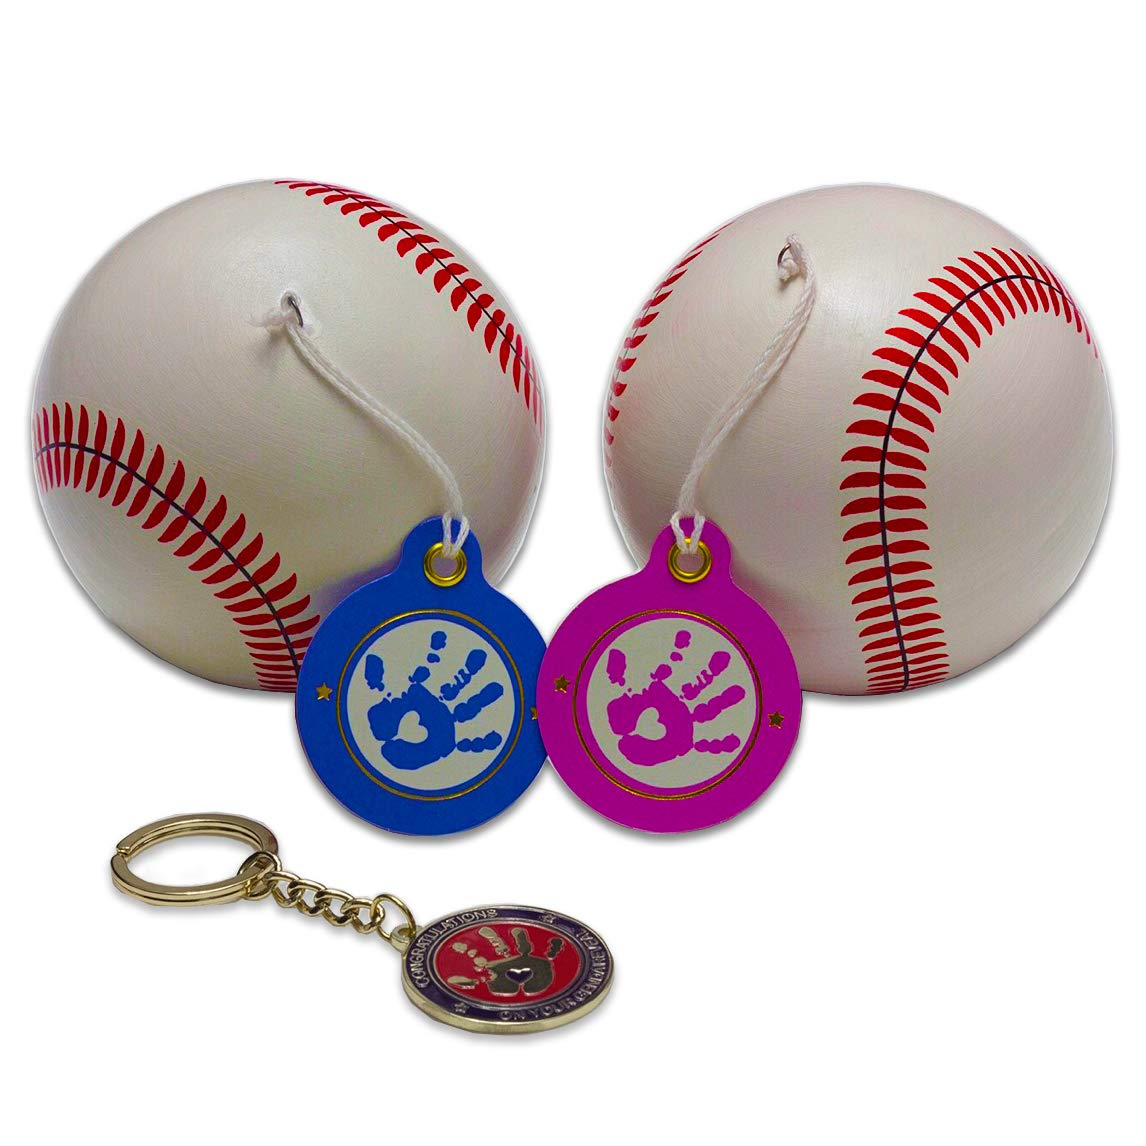 GendaGuru Premium Gender Reveal Baseball Set Bonus Keepsake | 2 x Exploding Baseballs with Extra Pink and Blue Powder | Baby Shower Gender Reveal Party Supplies | Team Boy Or Girl 輸入品